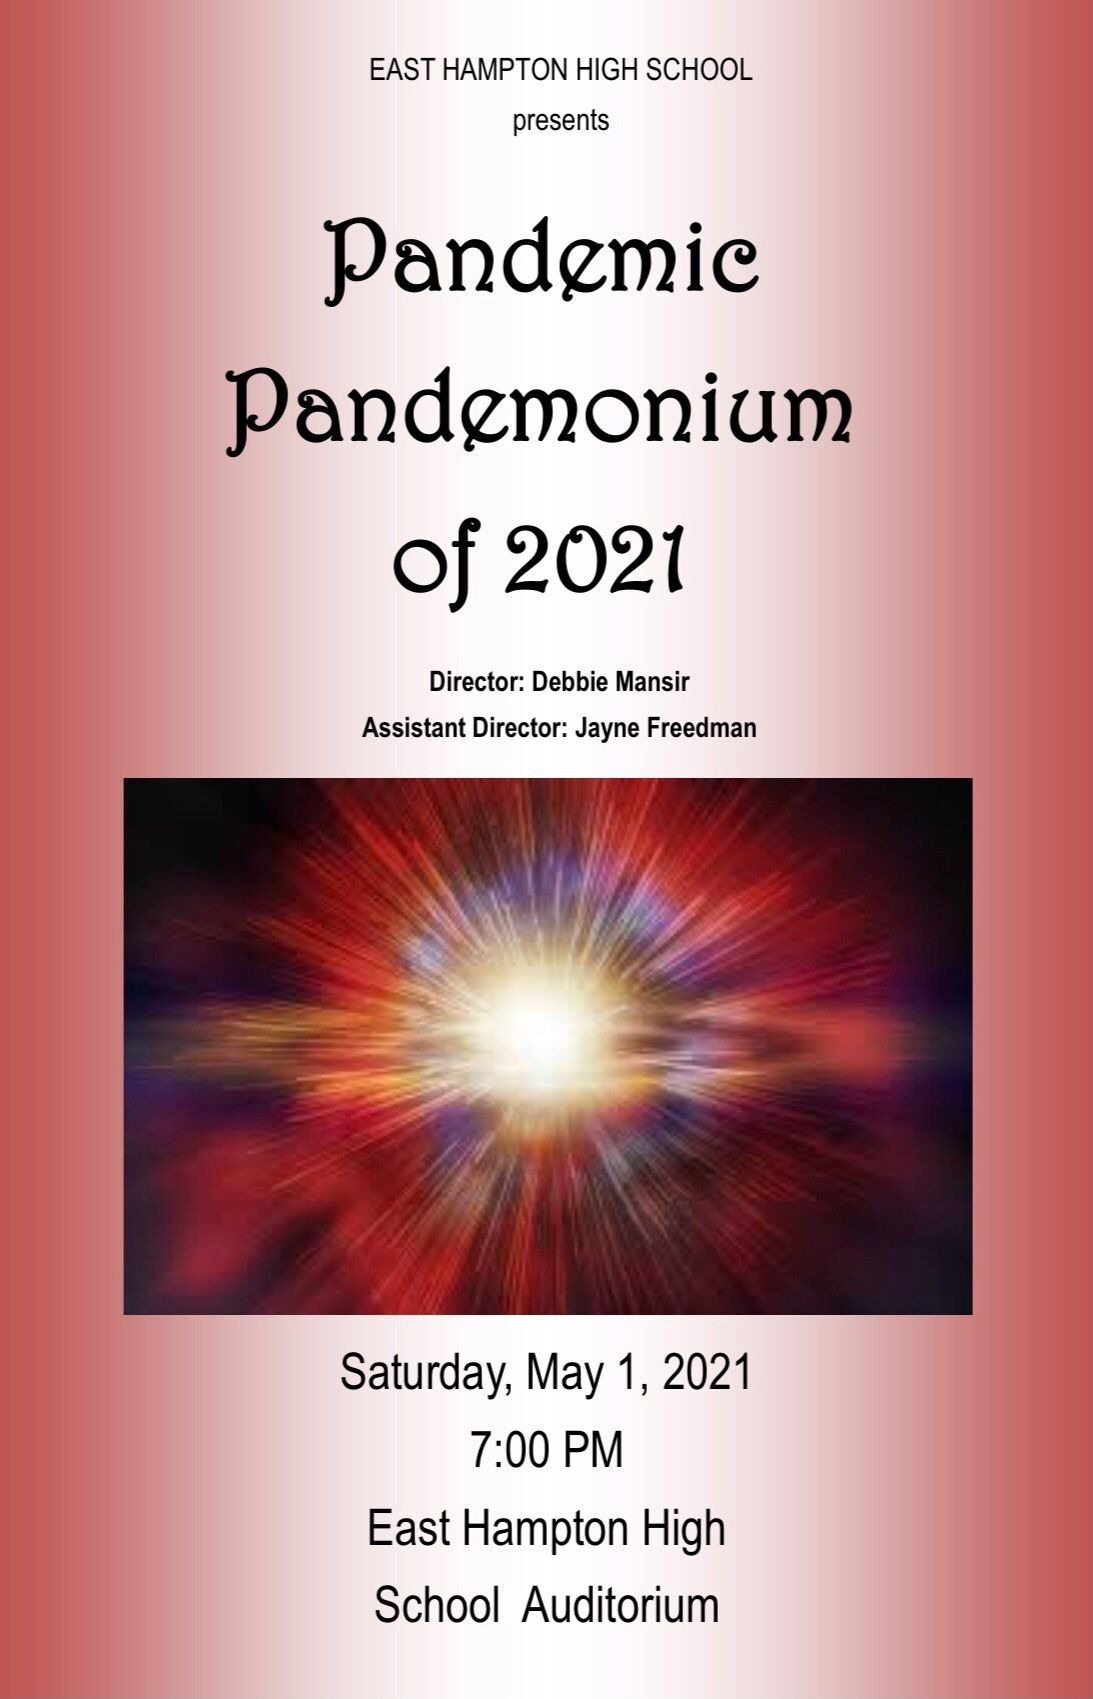 Pandemic Pandemonium of 2021